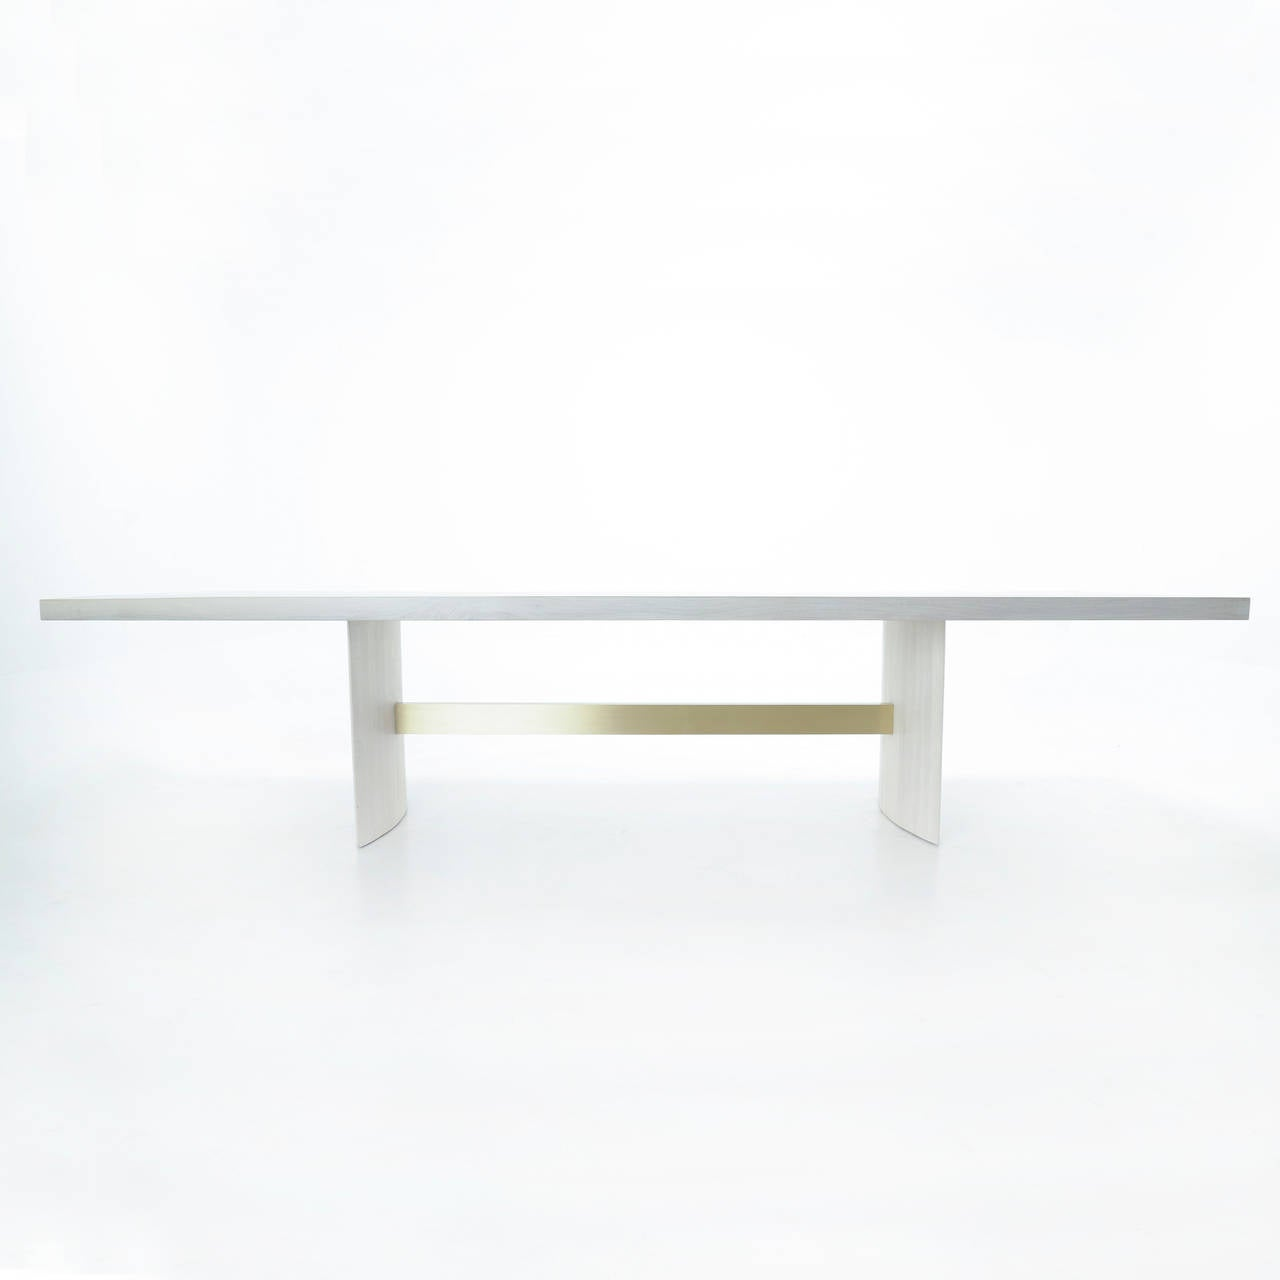 Jantar Alloy Dining Table by Thomas Hayes Studio 2